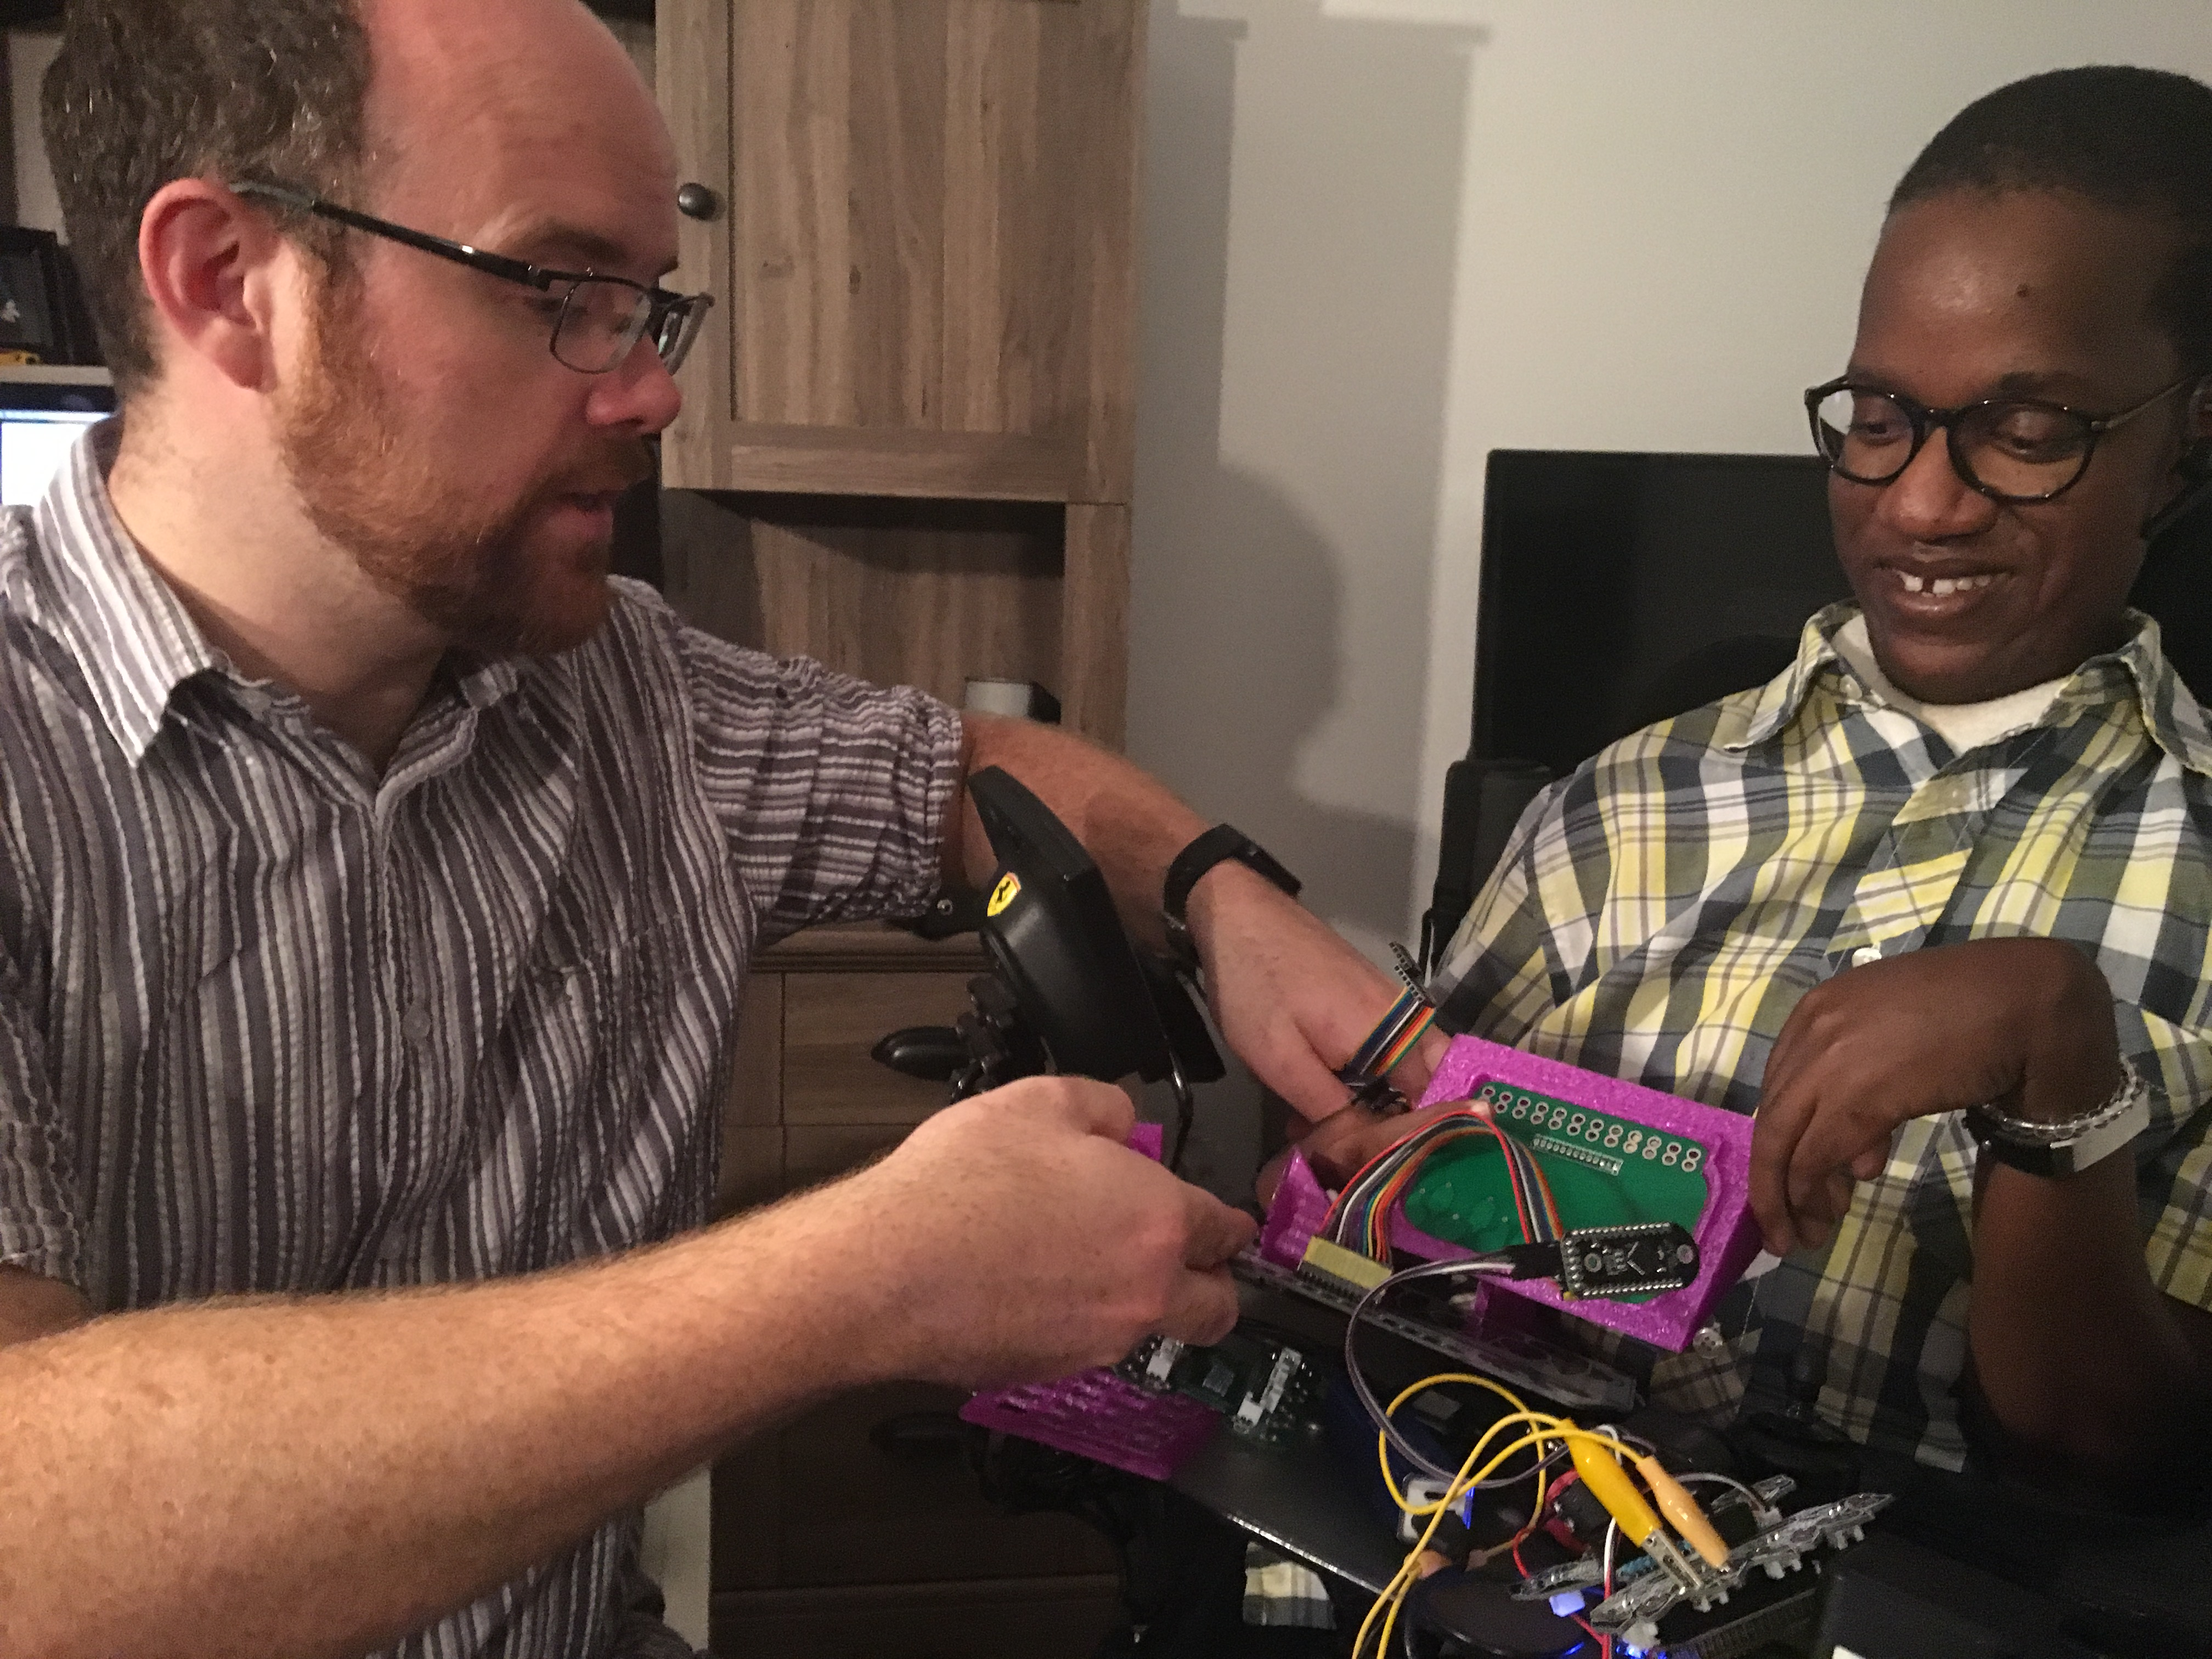 Charles and Gift holding a miniature keyboard made of 3D printed parts and a custom circuit board.